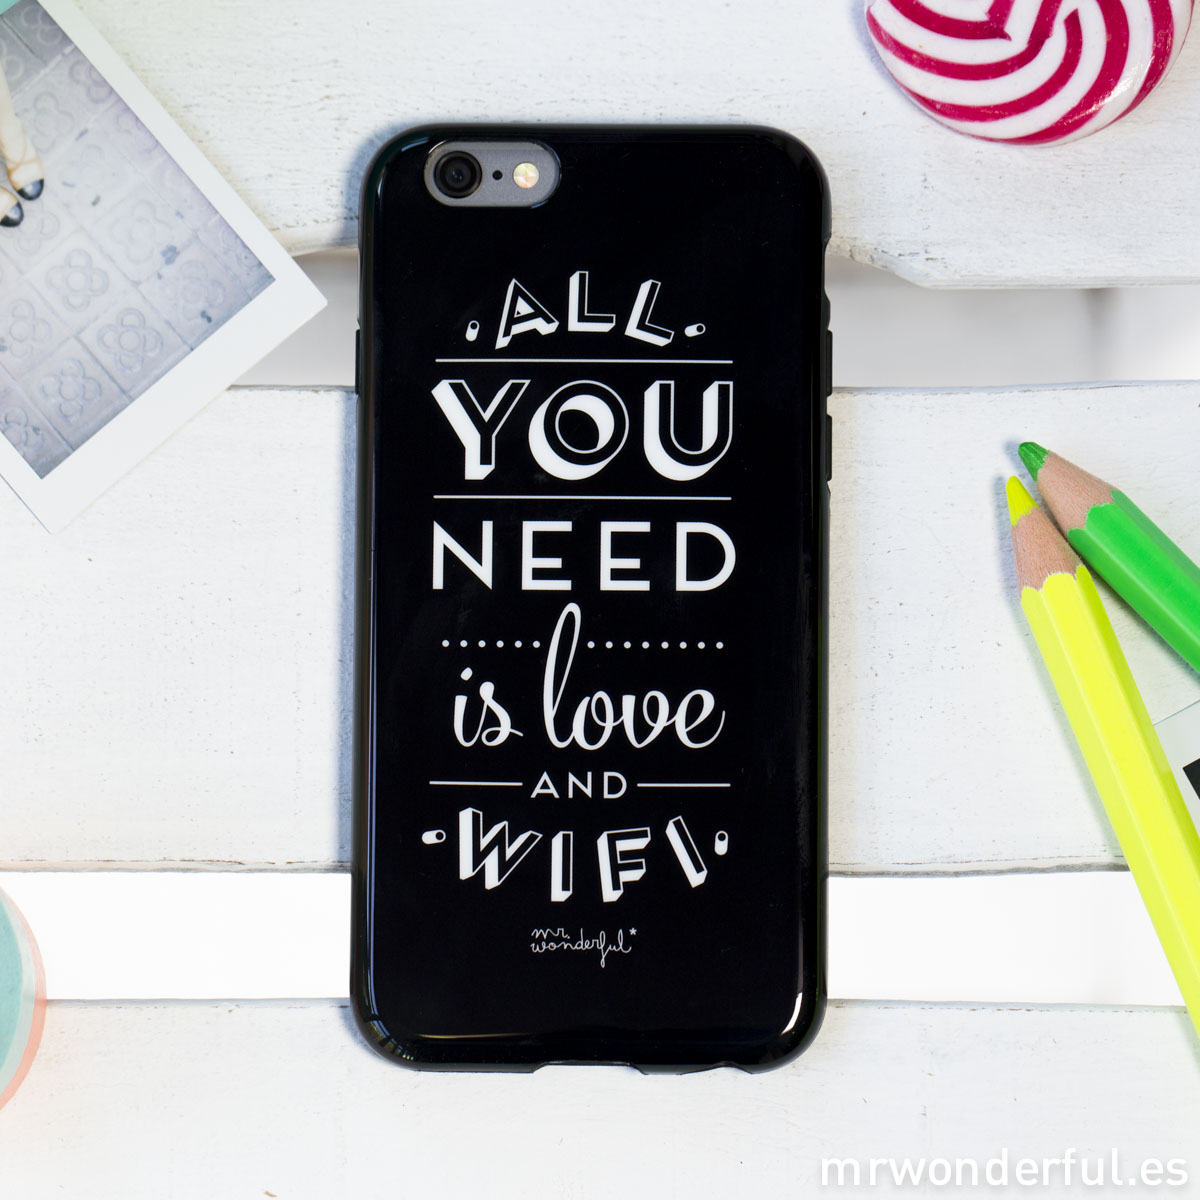 mrwonderful_mrcar004_carcasa-iphone-6_all-you-need-love-wifi-5